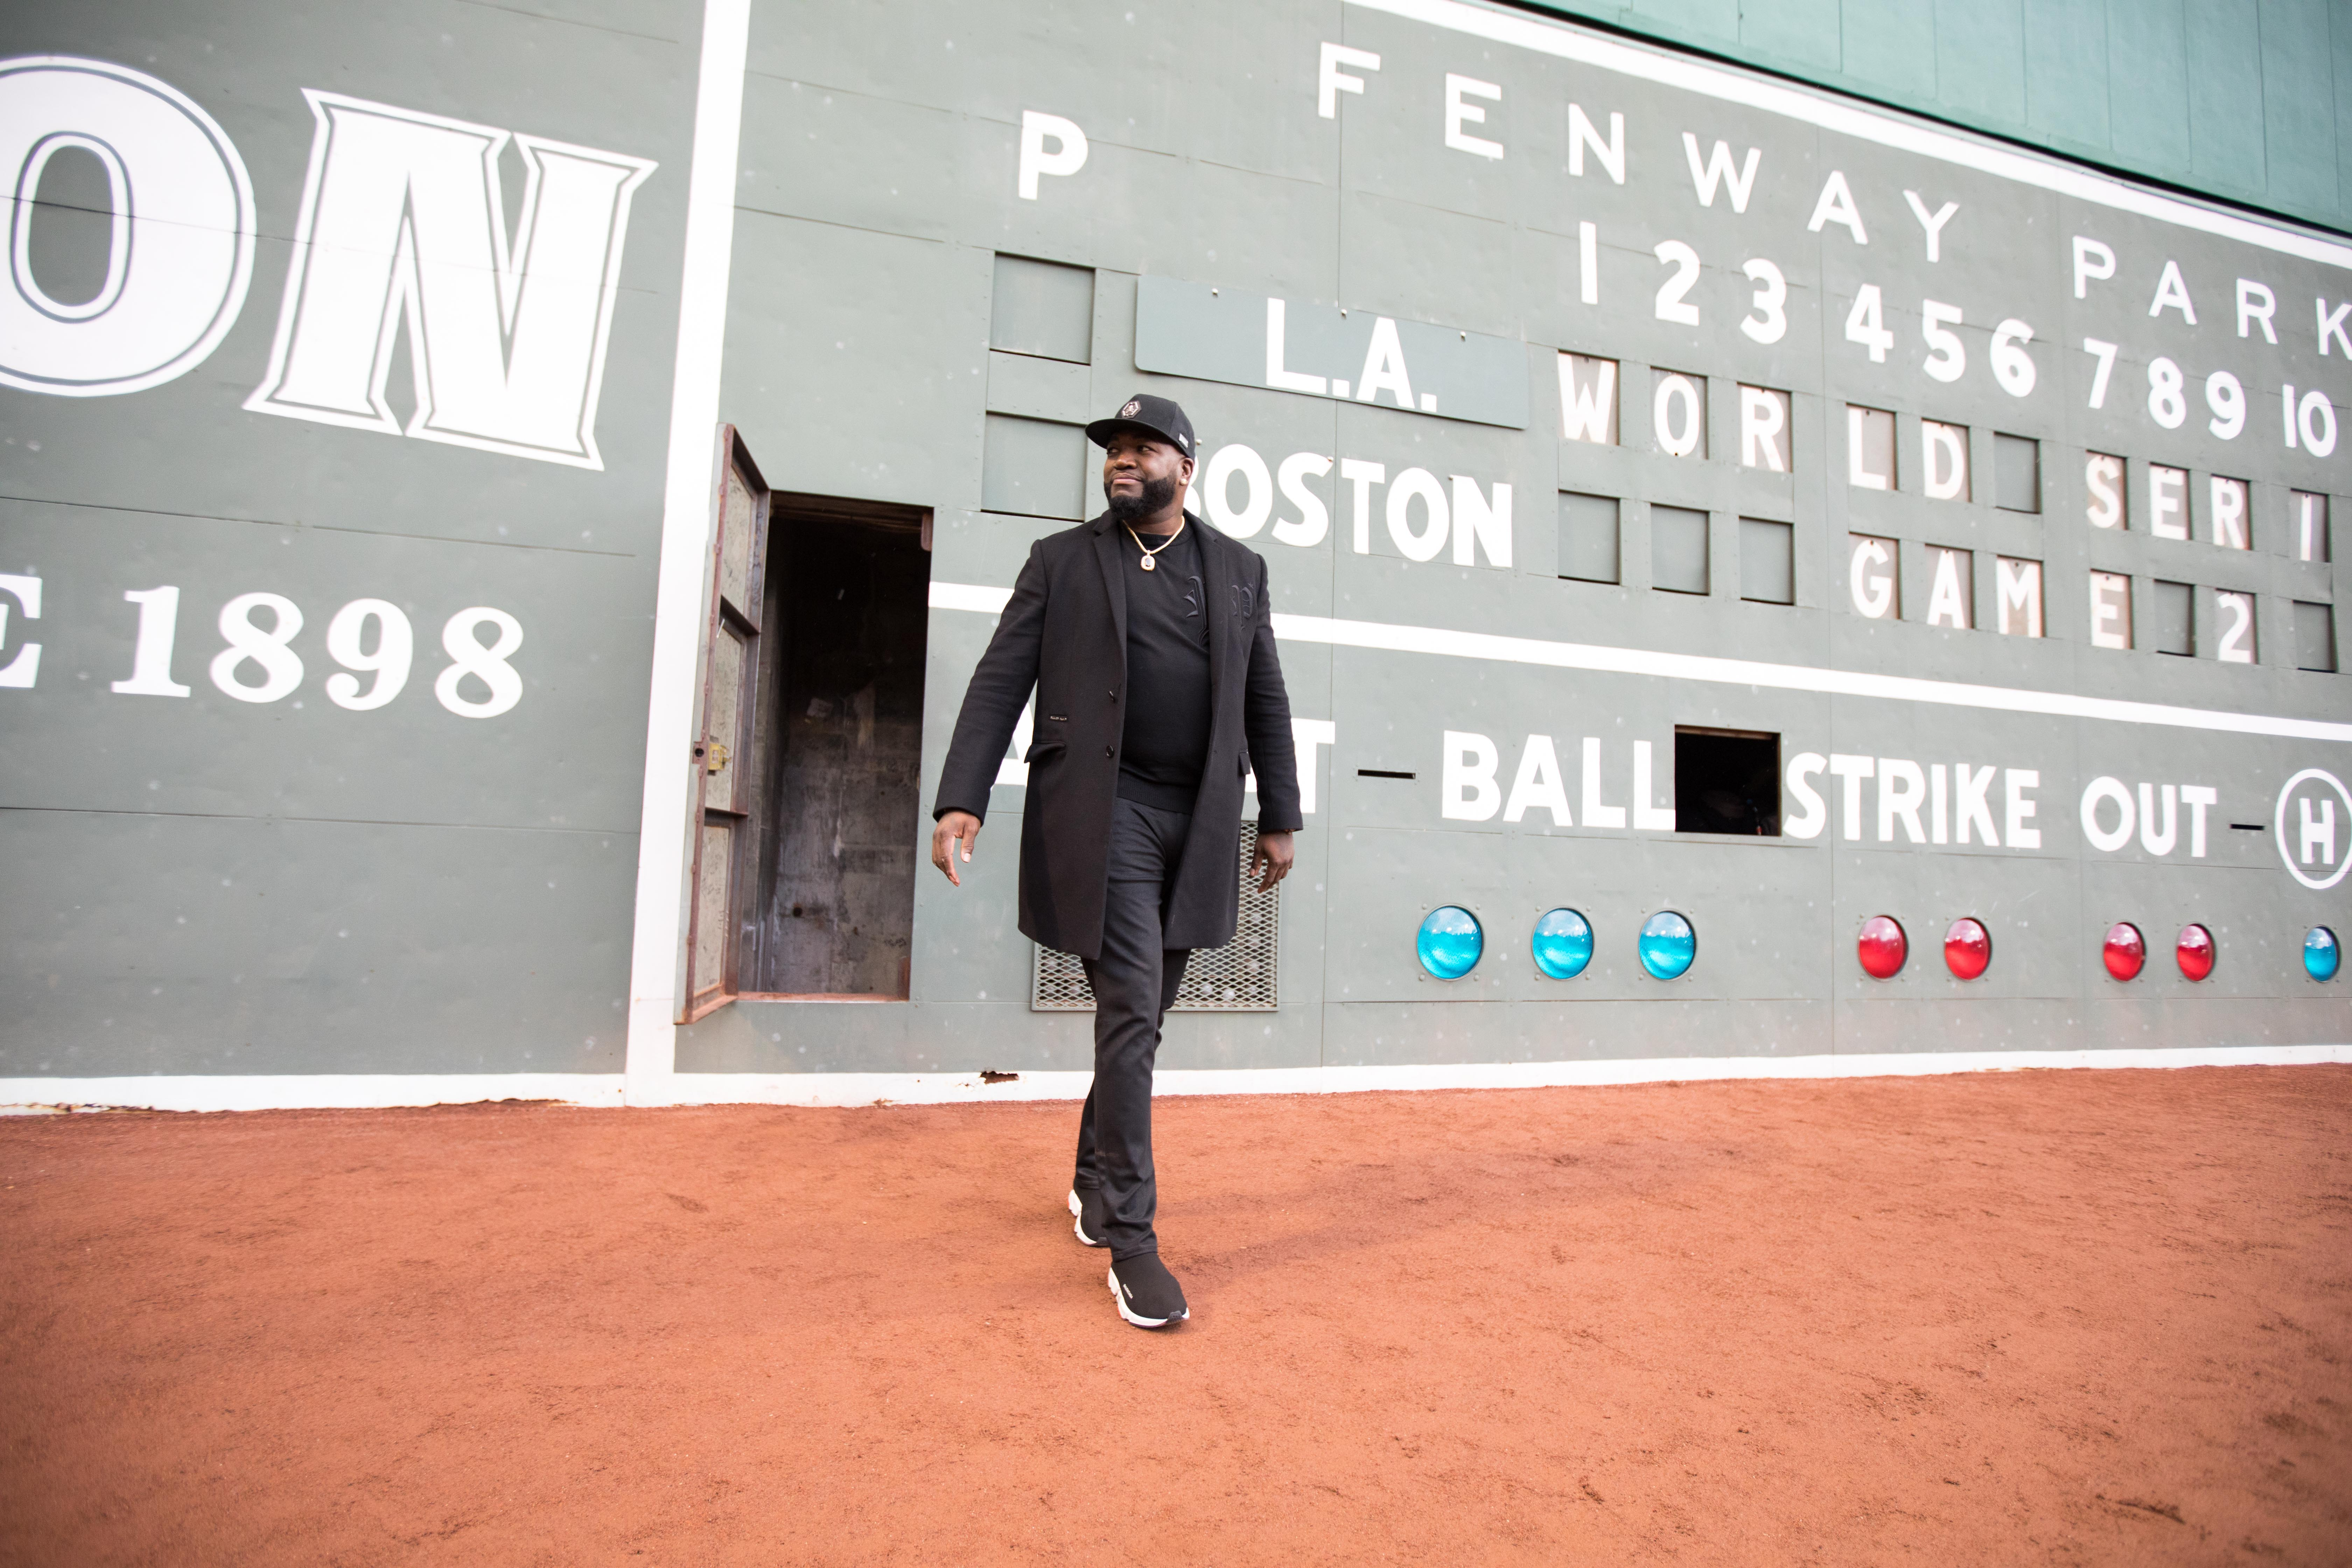 BOSTON, MA - OCTOBER 24: Mastercard and David Ortiz surprise Red Sox fans from inside Fenway Parks Green Monster before Game 2 of the MLB World Series on October 24, 2018 in Boston, Massachusetts. (Photo by Scott Eisen/Getty Images for Mastercard)